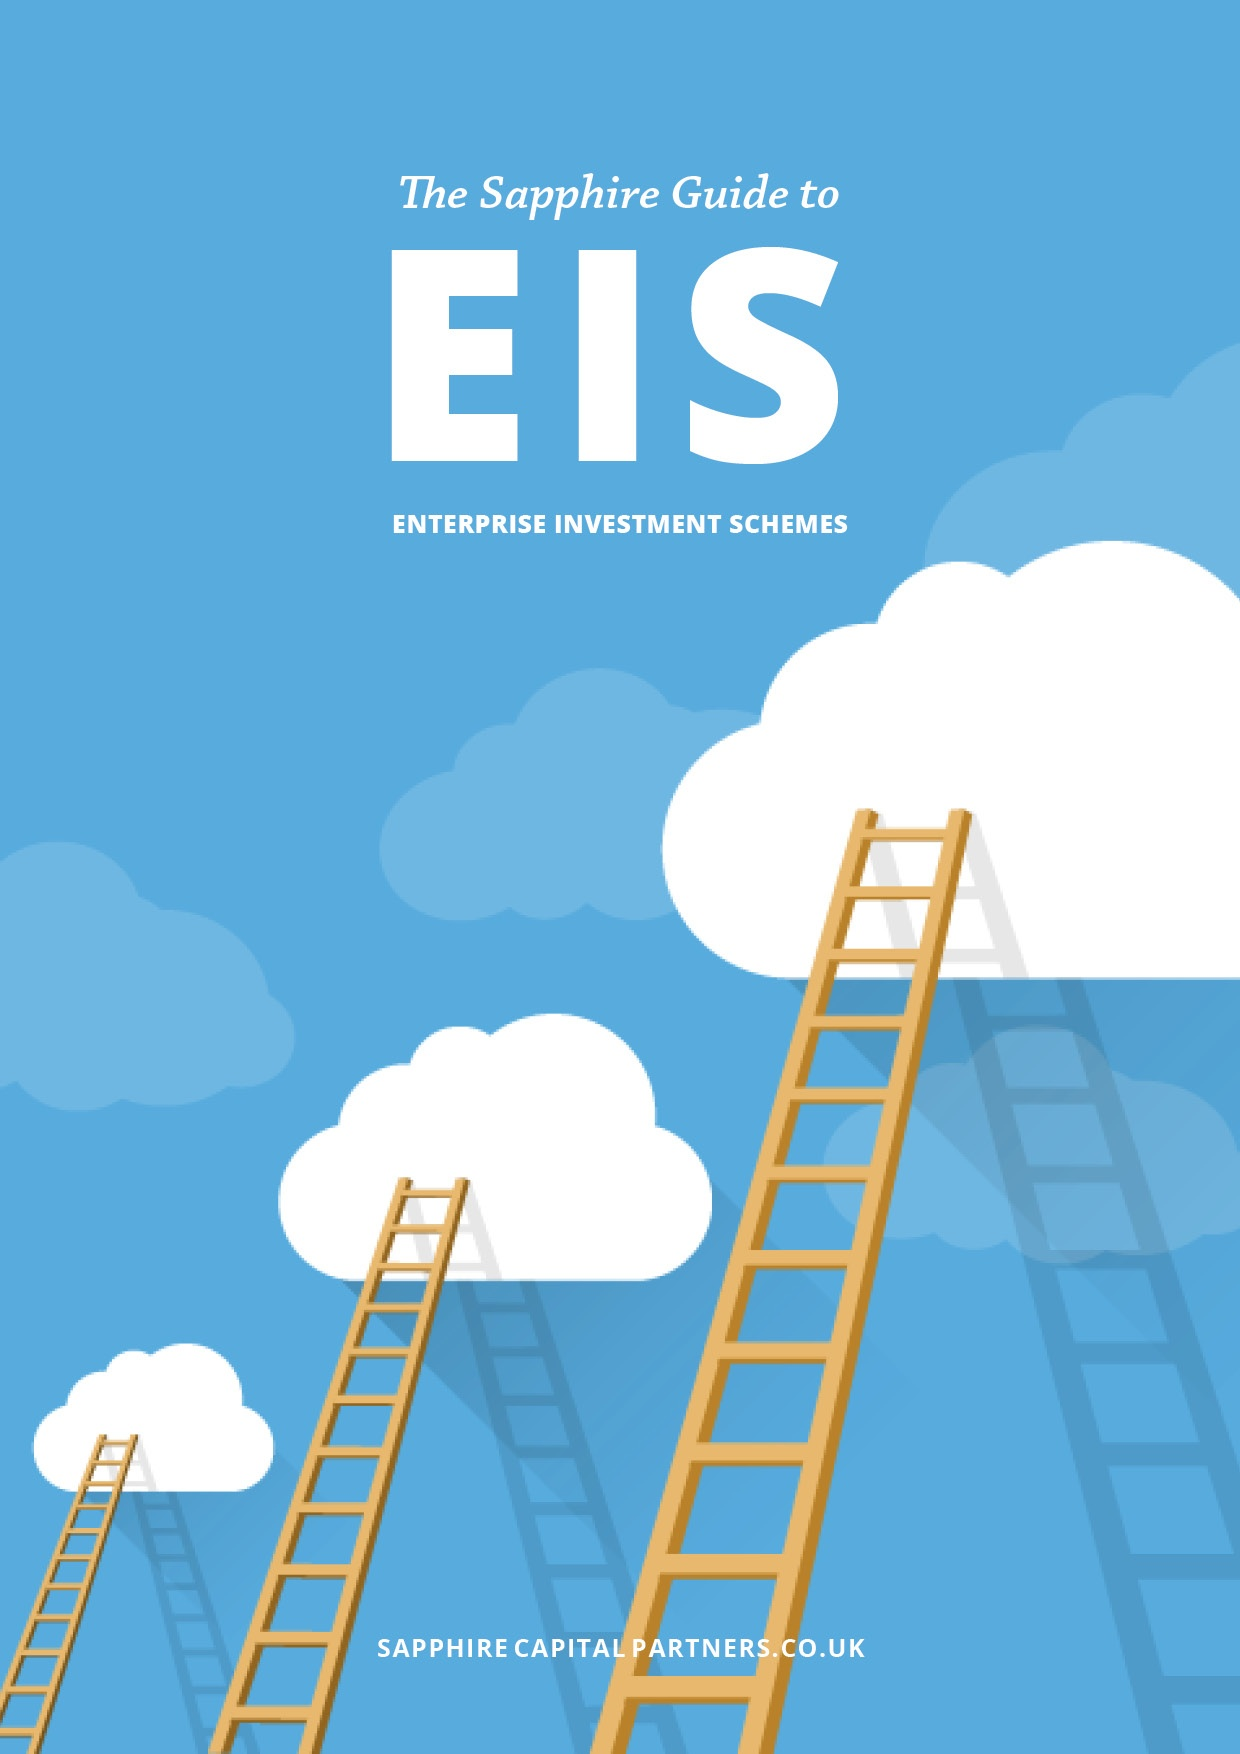 The Sapphire Guide to EIS